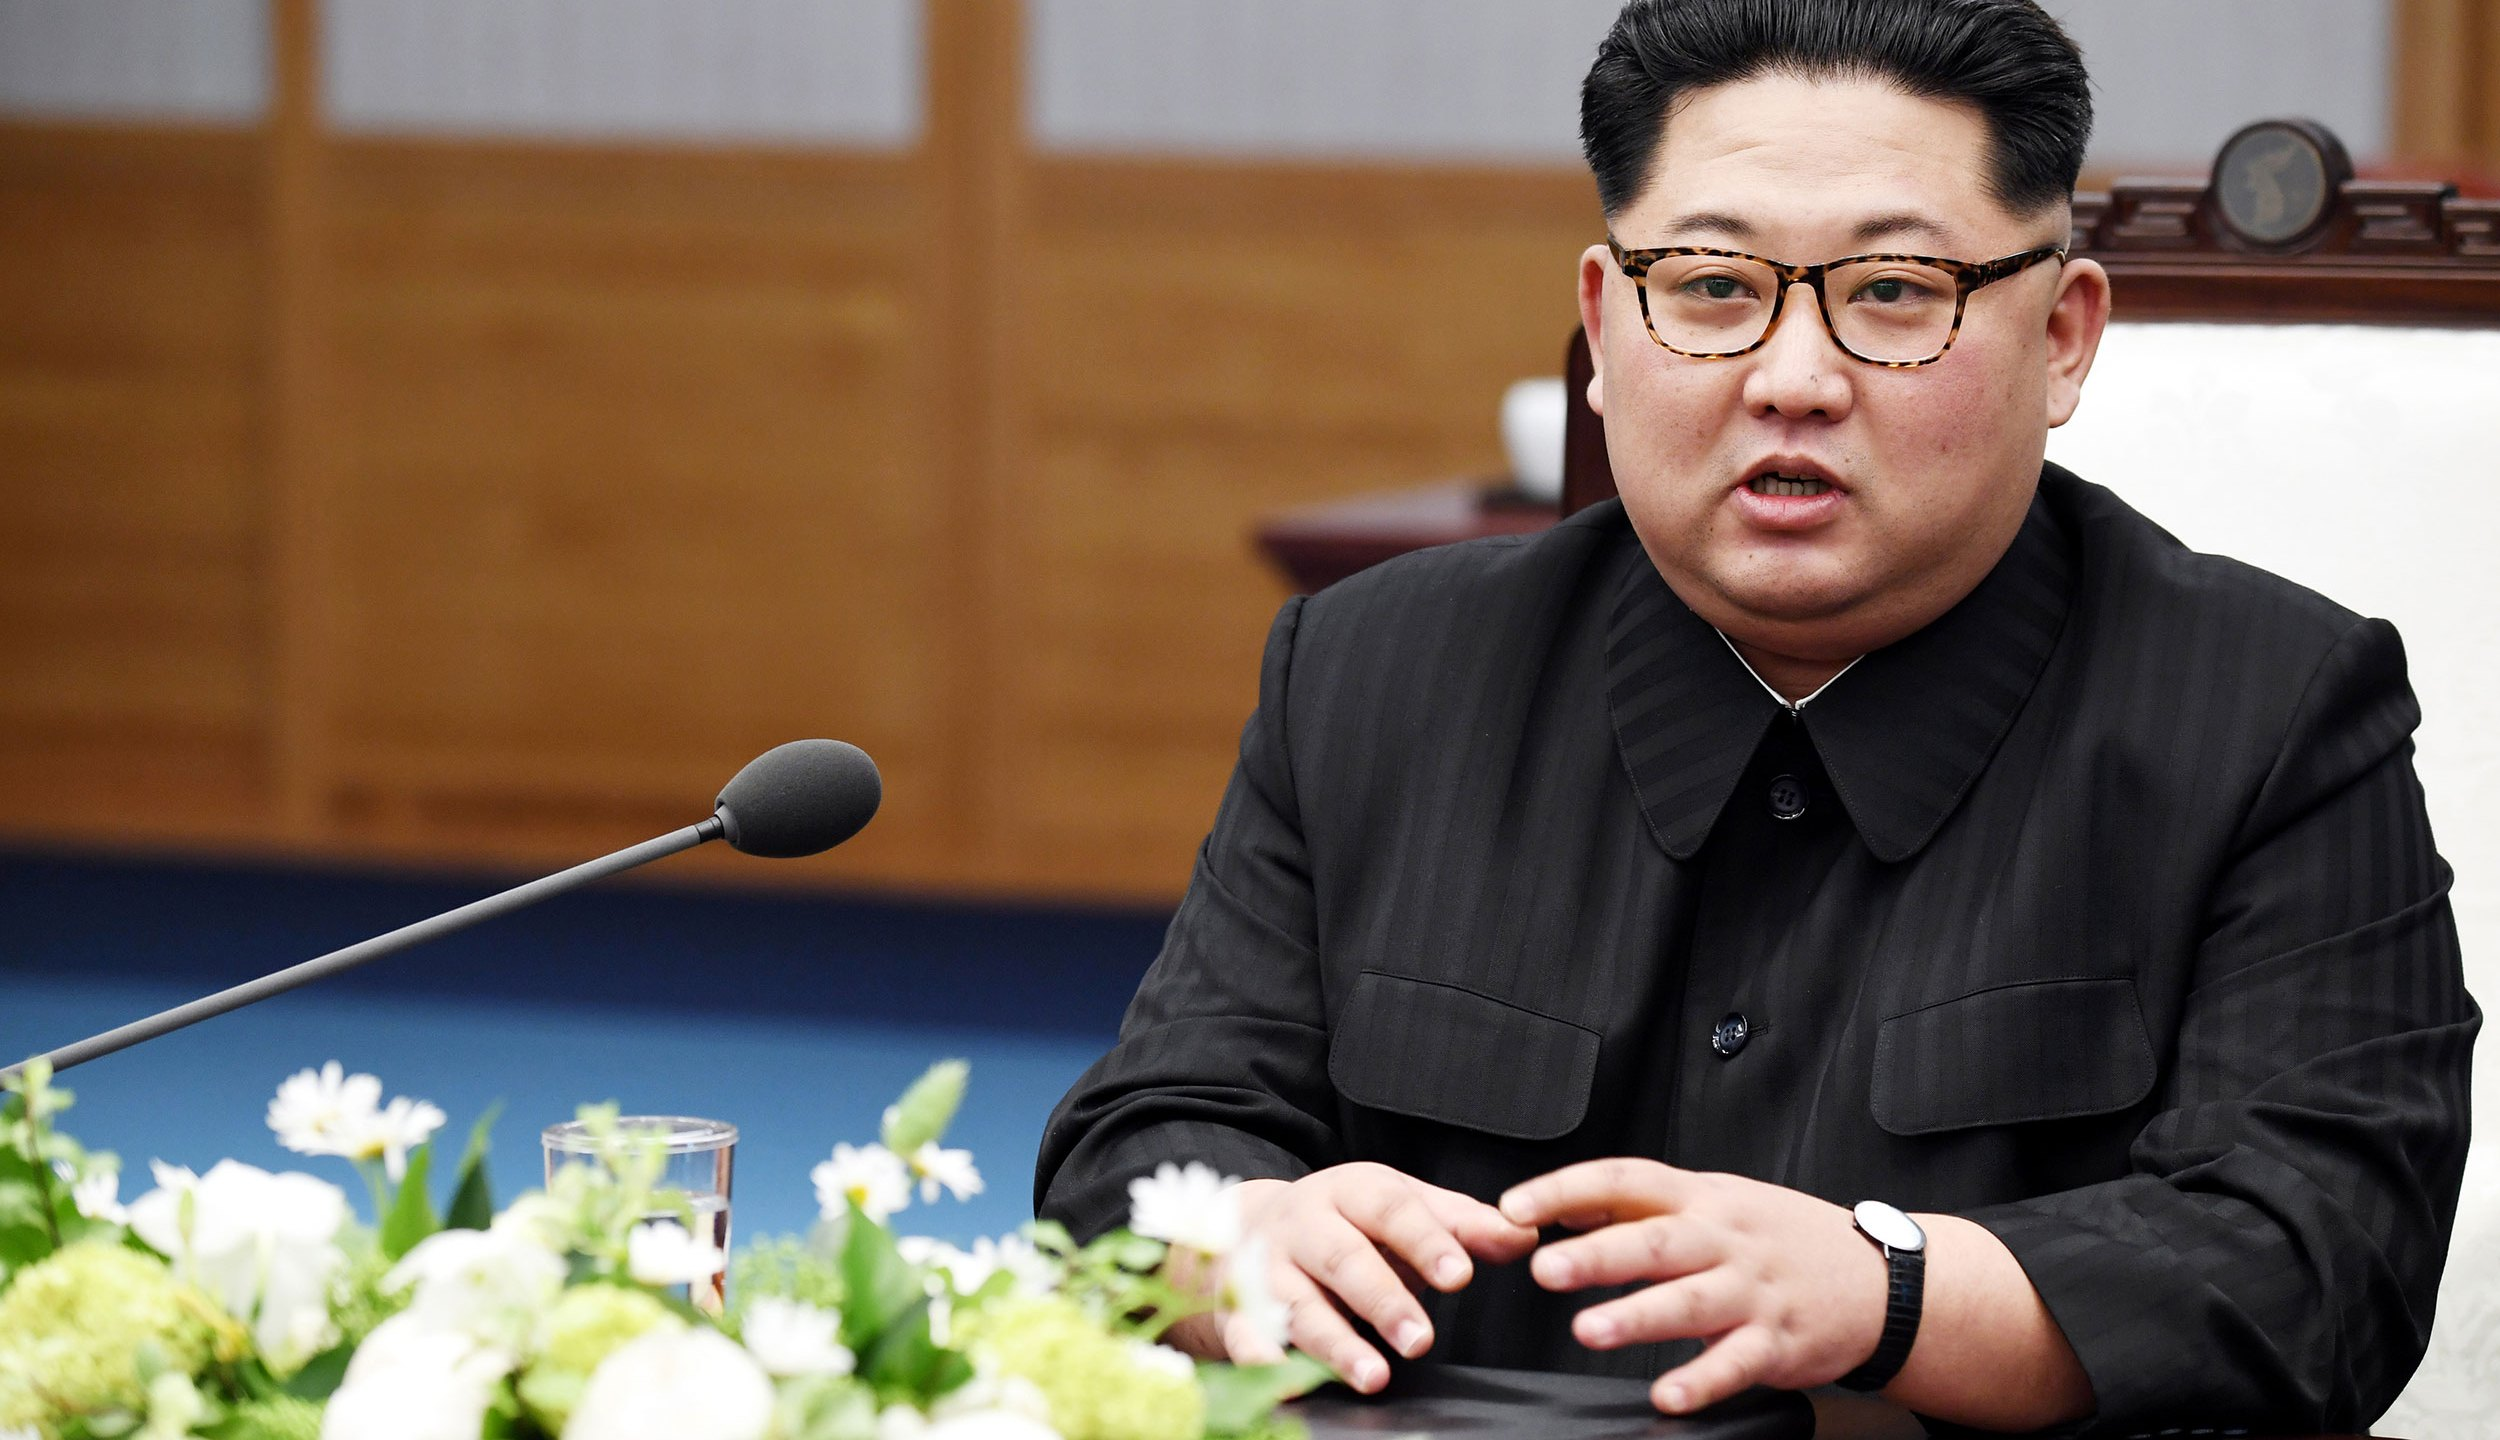 North Korean Leader Kim Jong Un speaks during the Inter-Korean Summit at the Peace House on April 27, 2018 in Panmunjom, South Korea. Kim and Moon meet at the border today for the third-ever inter-Korean summit talks after the 1945 division of the peninsula, and first since 2007 between then President Roh Moo-hyun of South Korea and Leader Kim Jong-il of North Korea. (Korea Summit Press Pool/Getty Images)